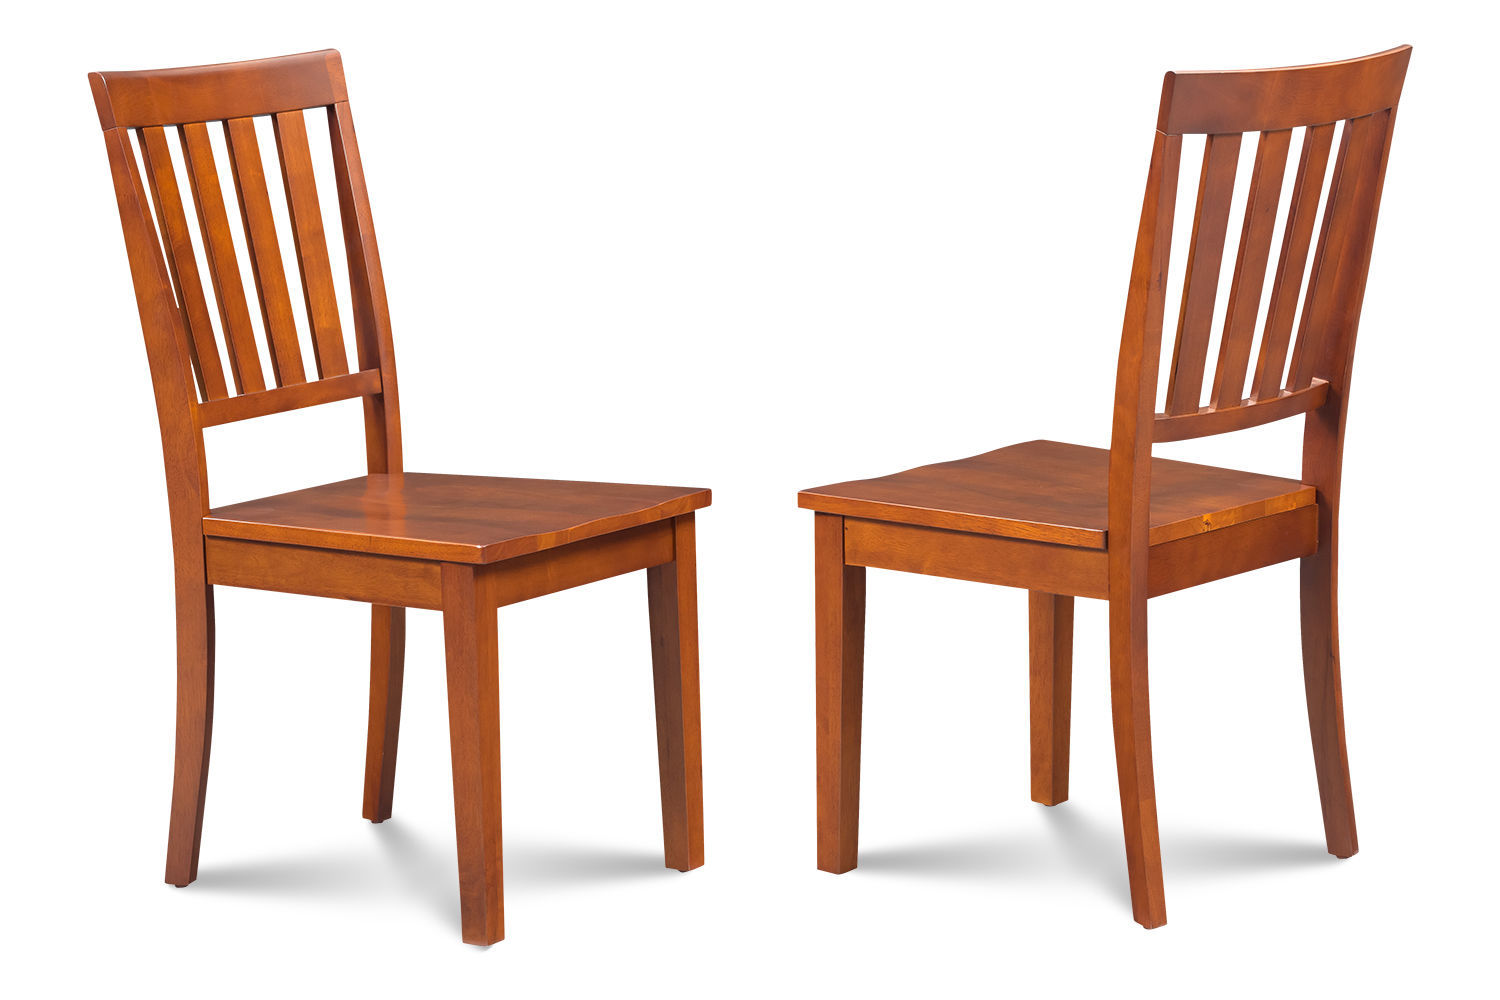 SET OF 2 MOCHA KITCHEN DINING CHAIRS WITH WOODEN SEAT IN SADDLE BROWN